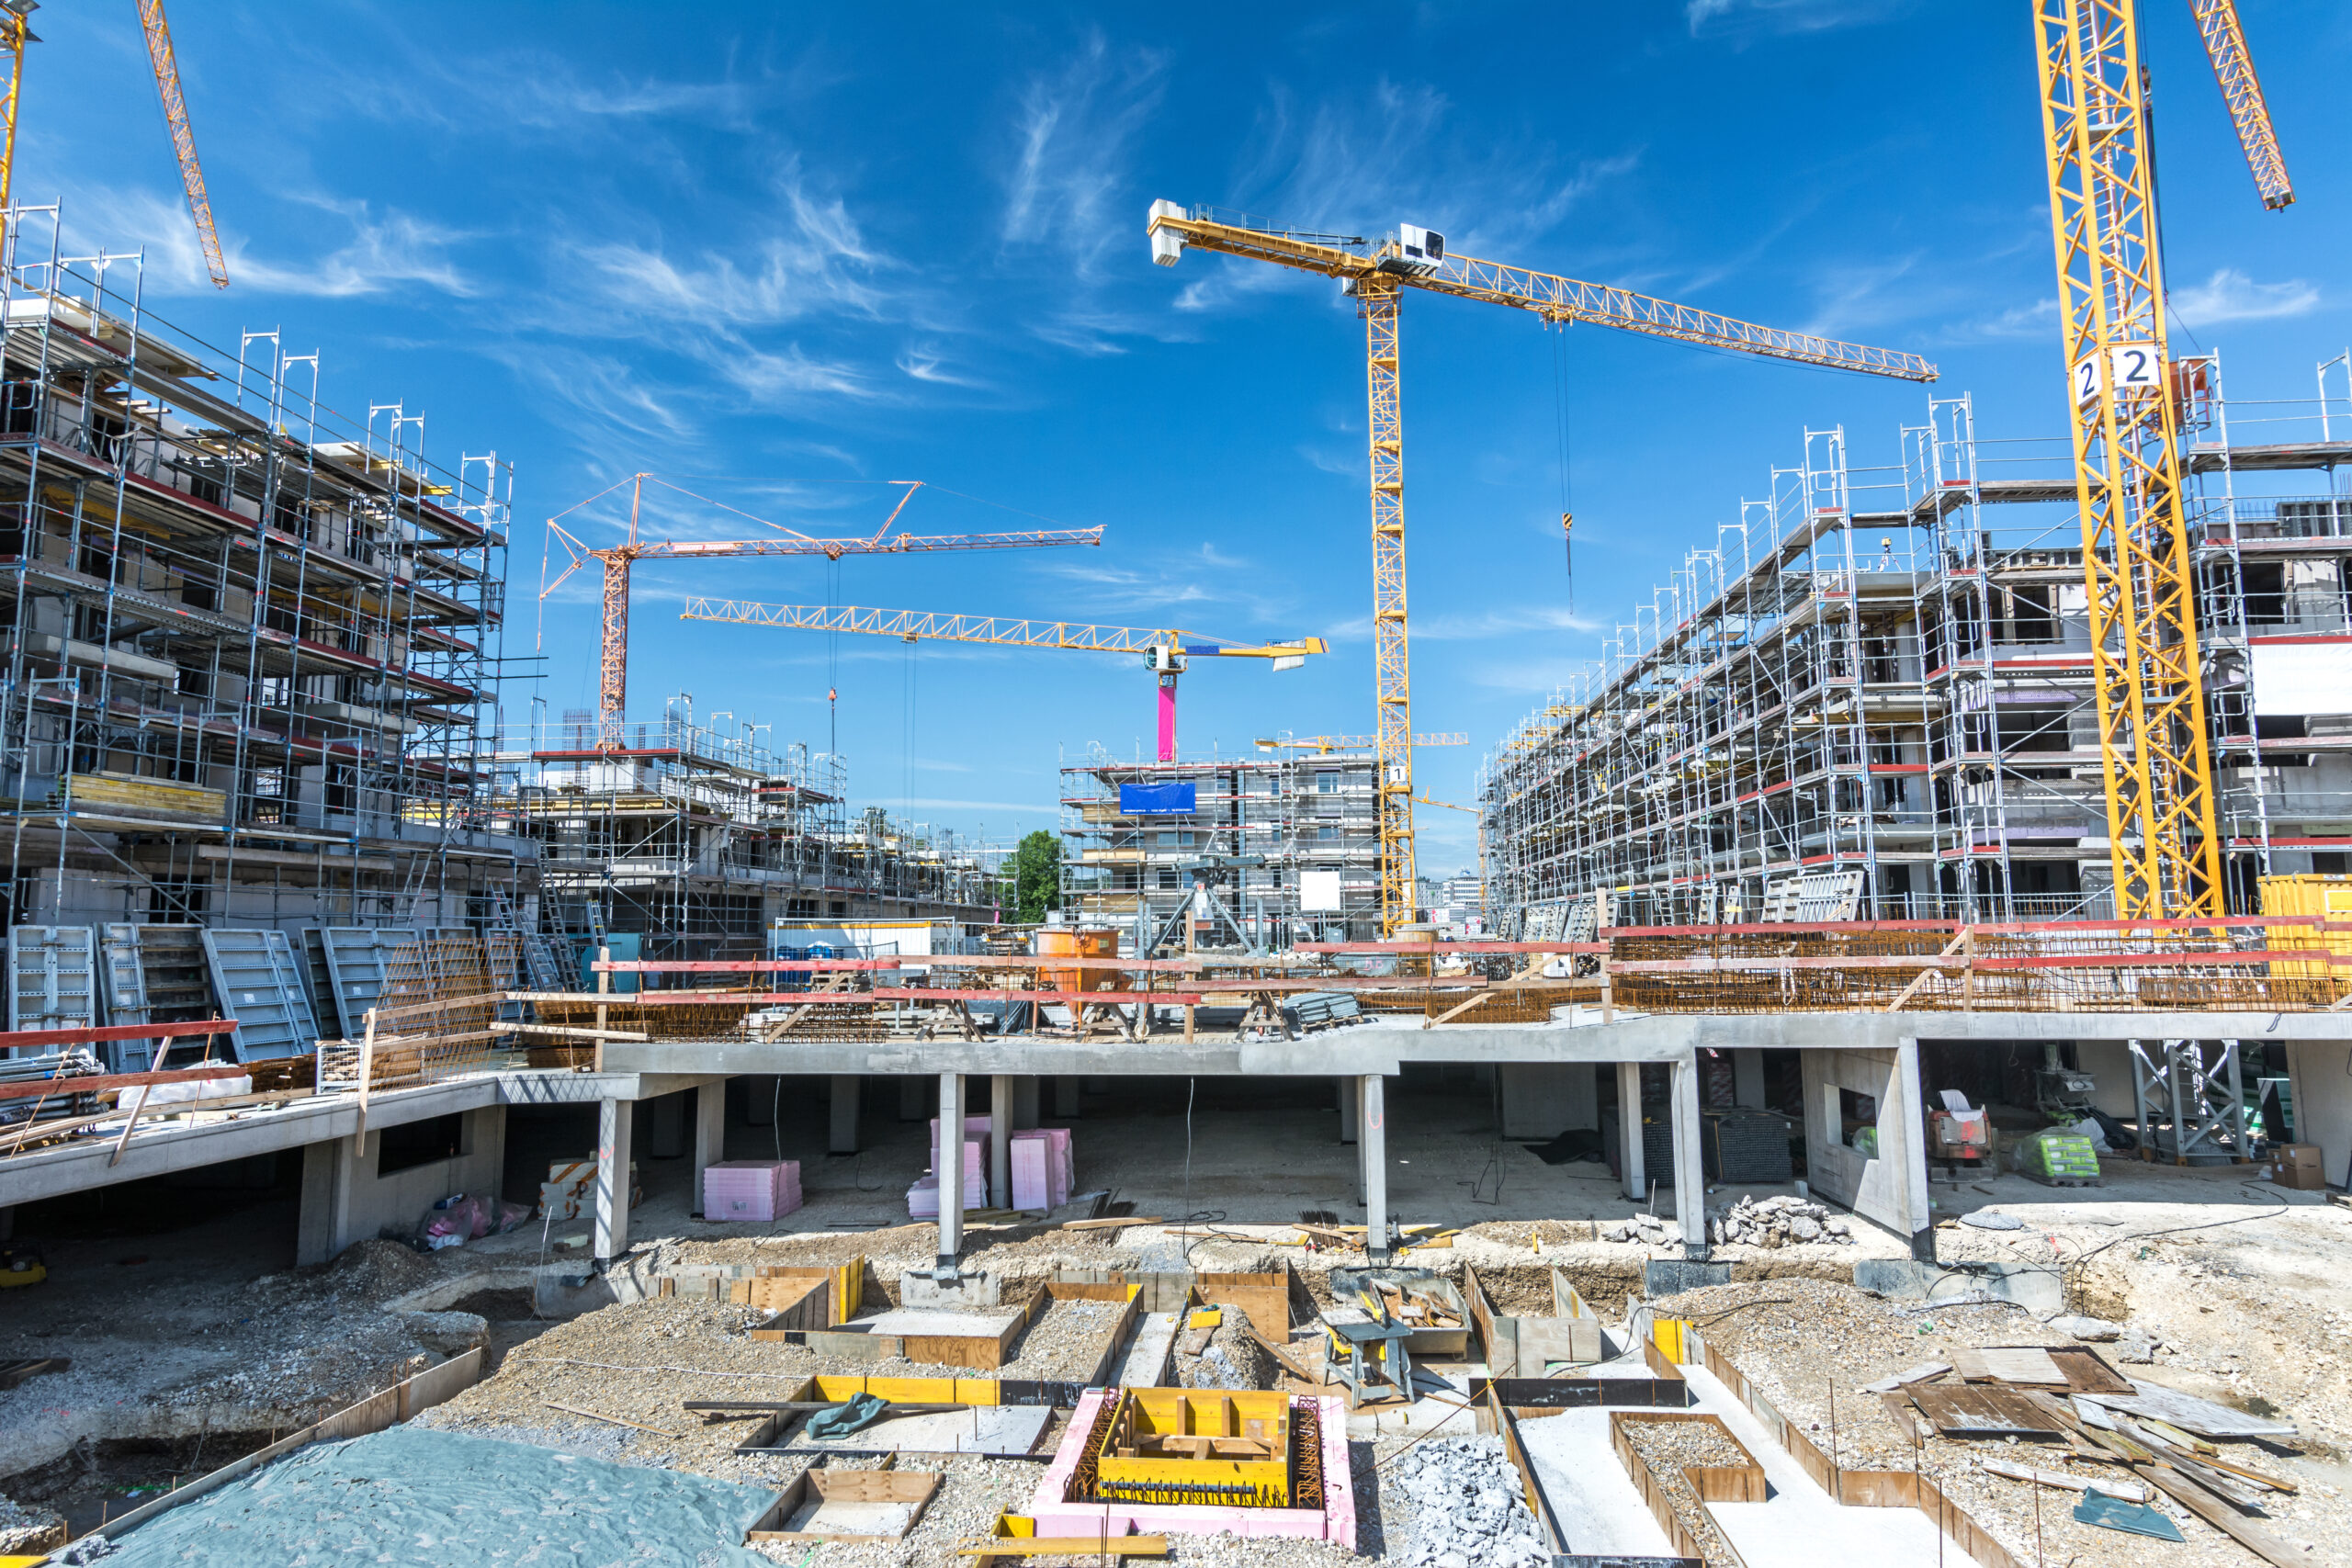 Les chantiers continuent